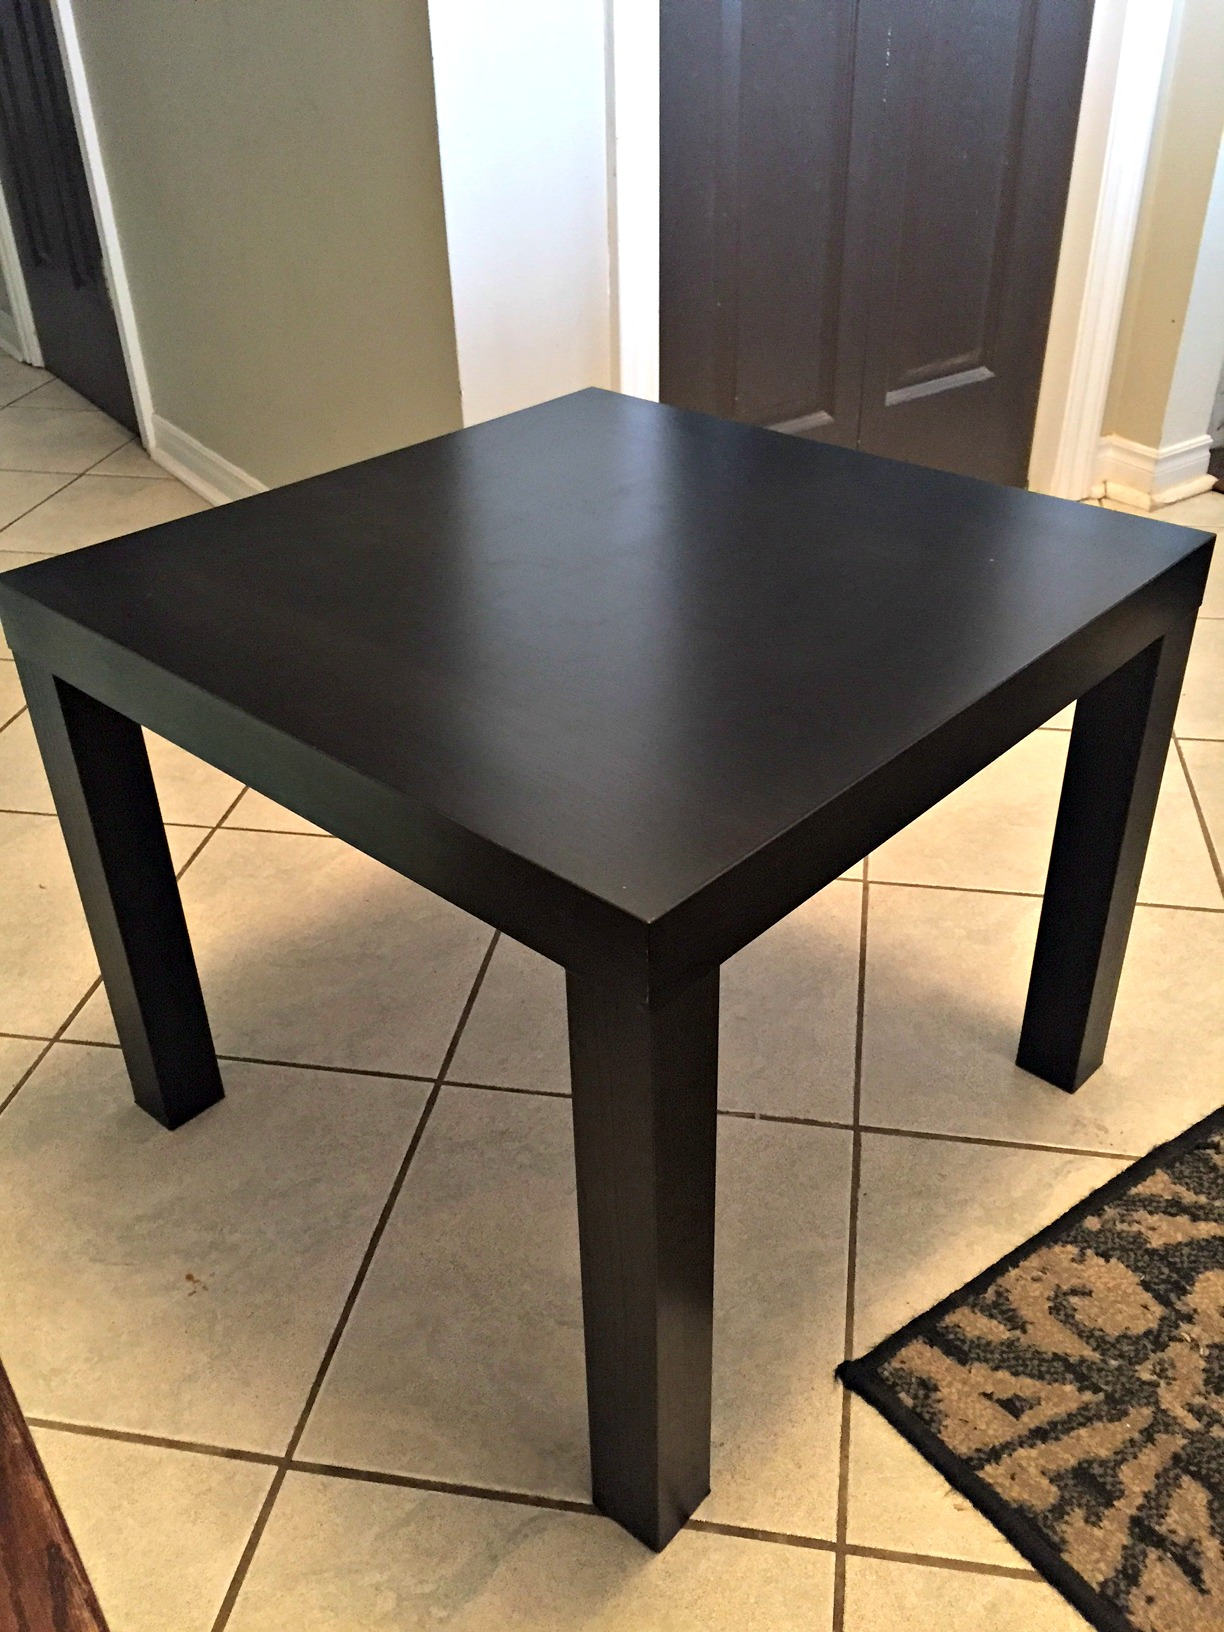 ikea hack how i turned an ikea side table into a christmas tree base a purdy little house. Black Bedroom Furniture Sets. Home Design Ideas